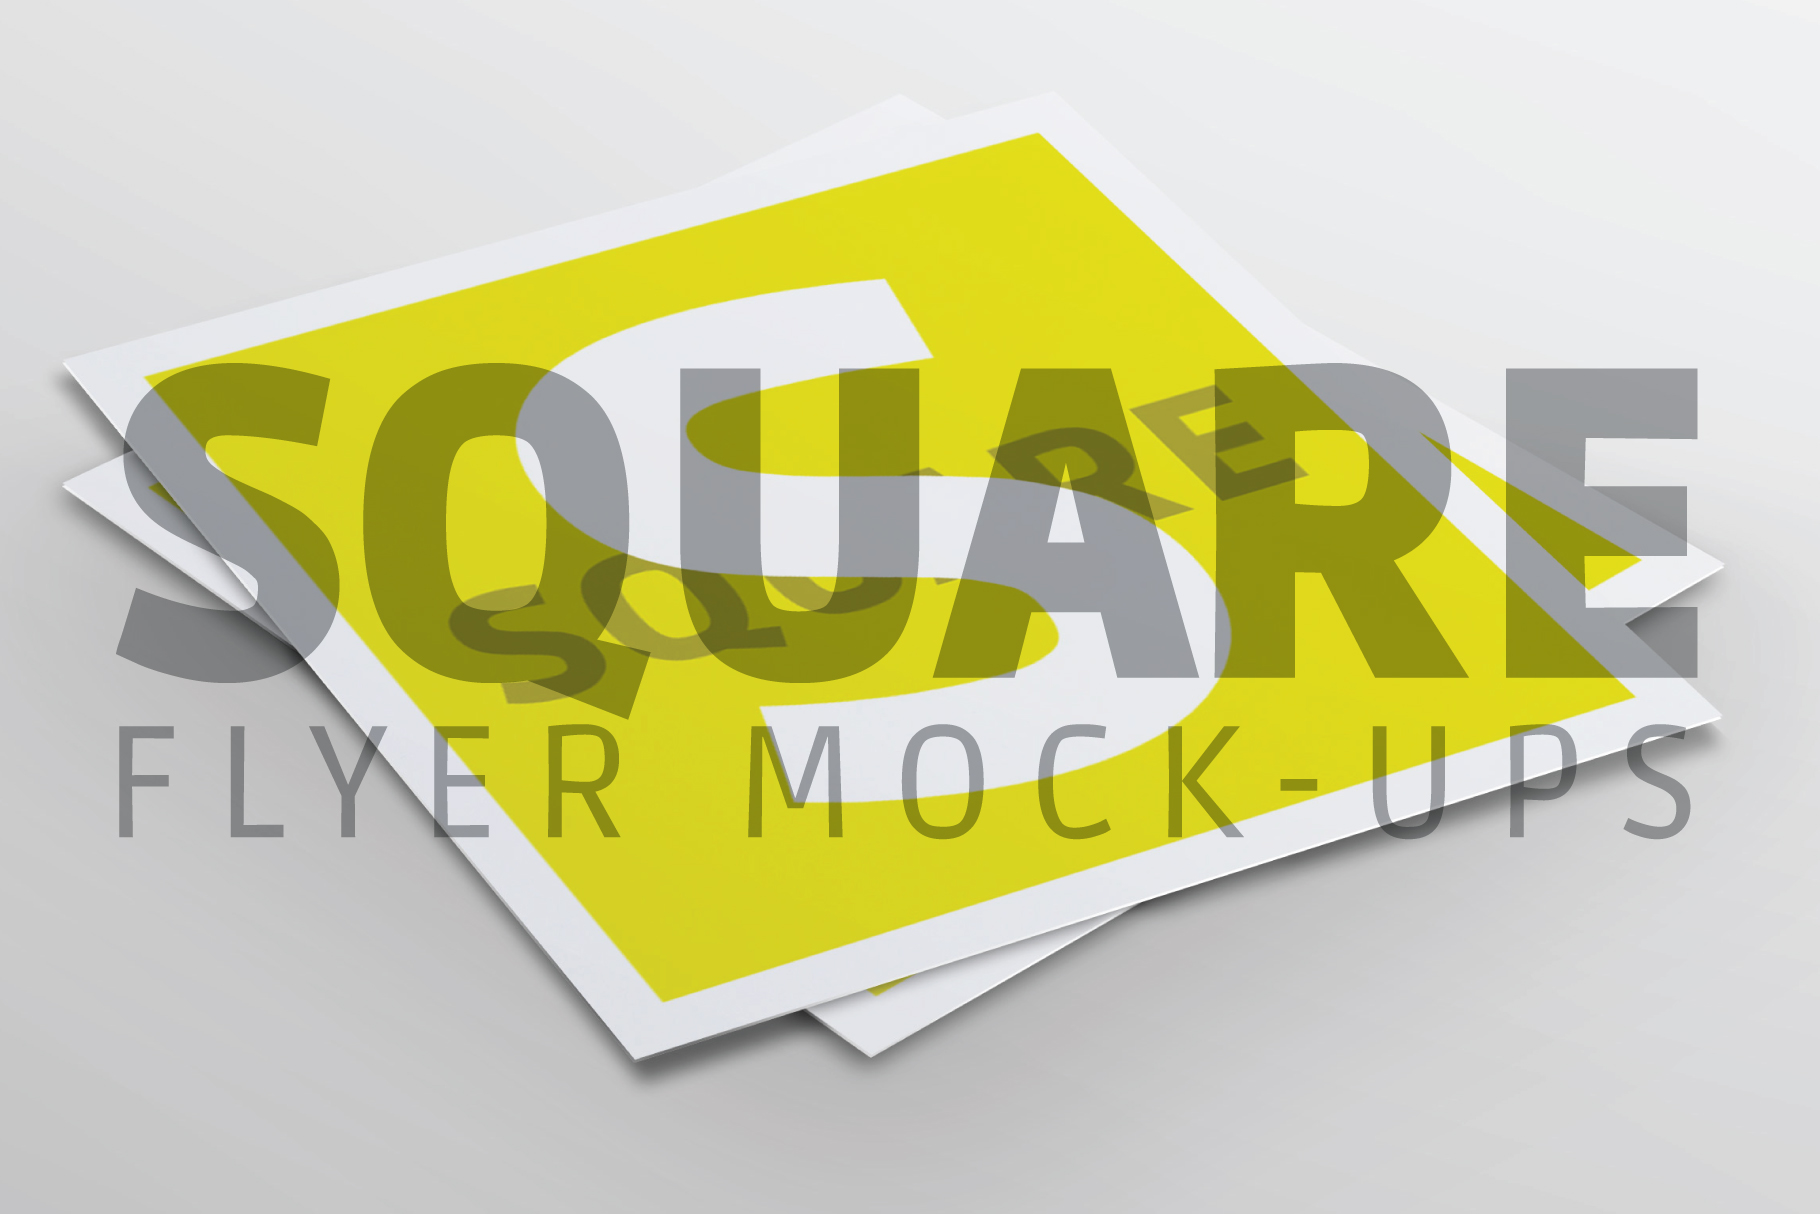 Square Flyer Mock-Up example image 1